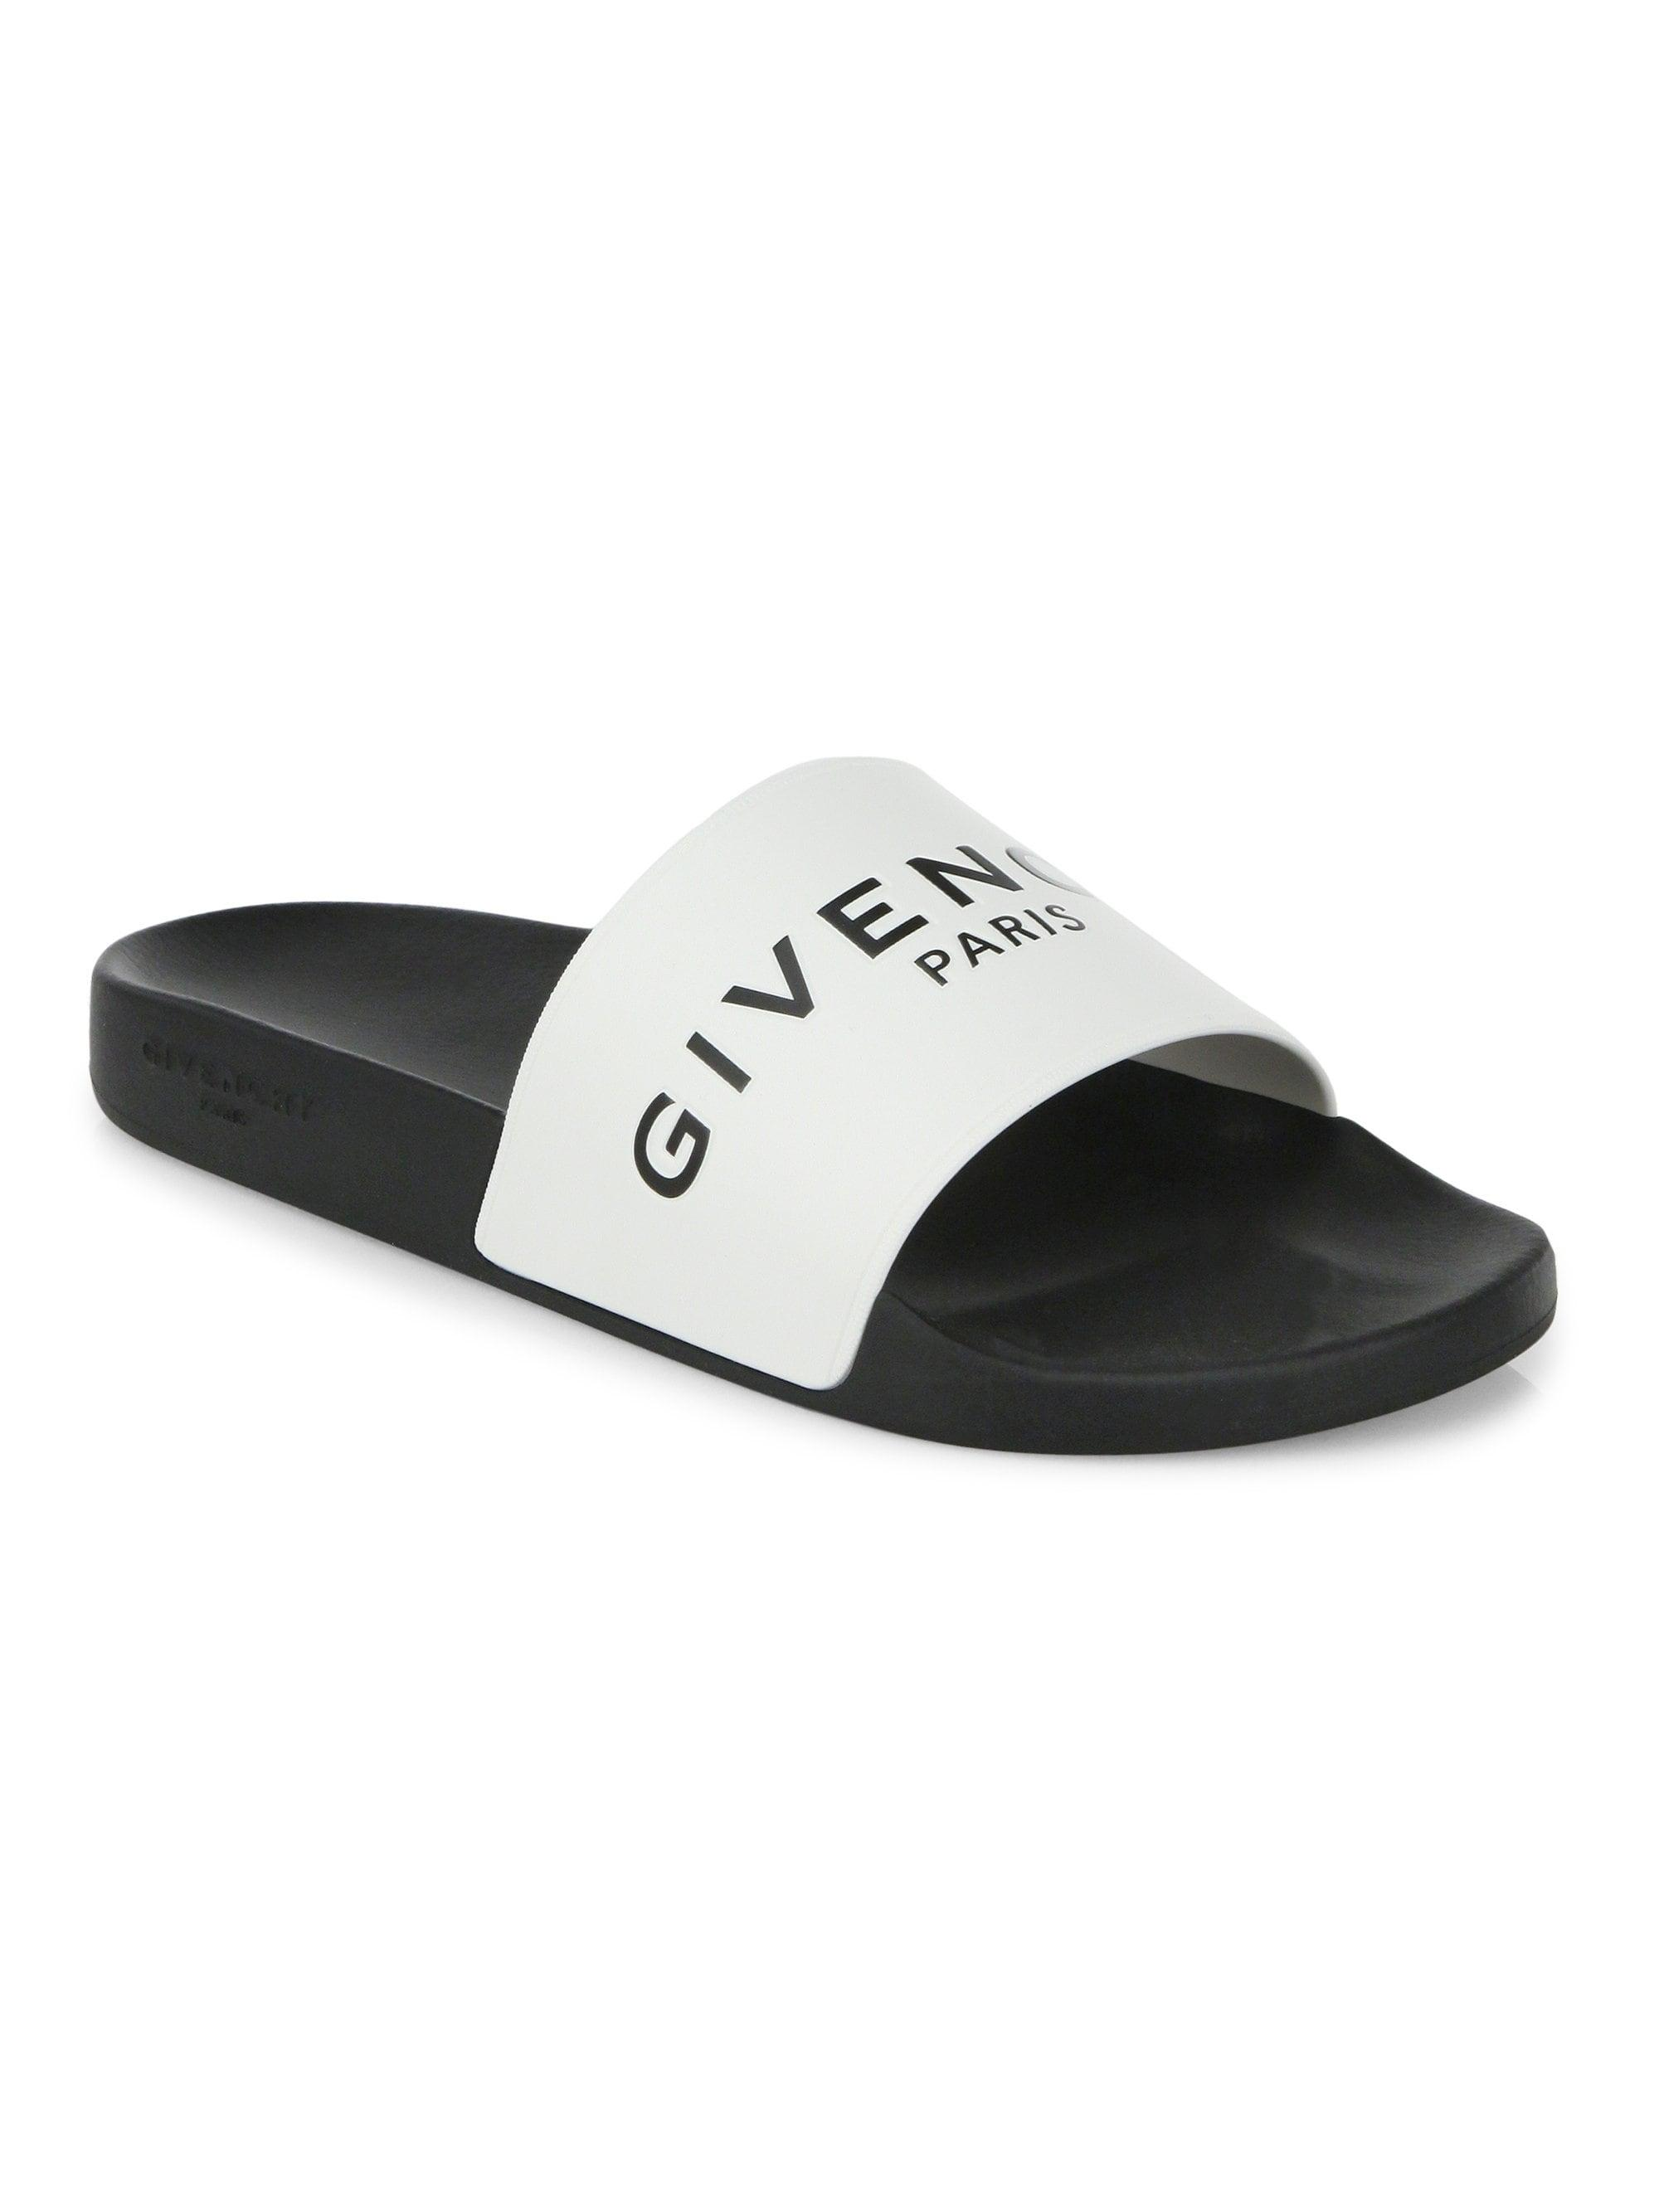 65c6ef0cb6ea Lyst - Givenchy Men s Logo Rubber Slides - Black in Black for Men ...